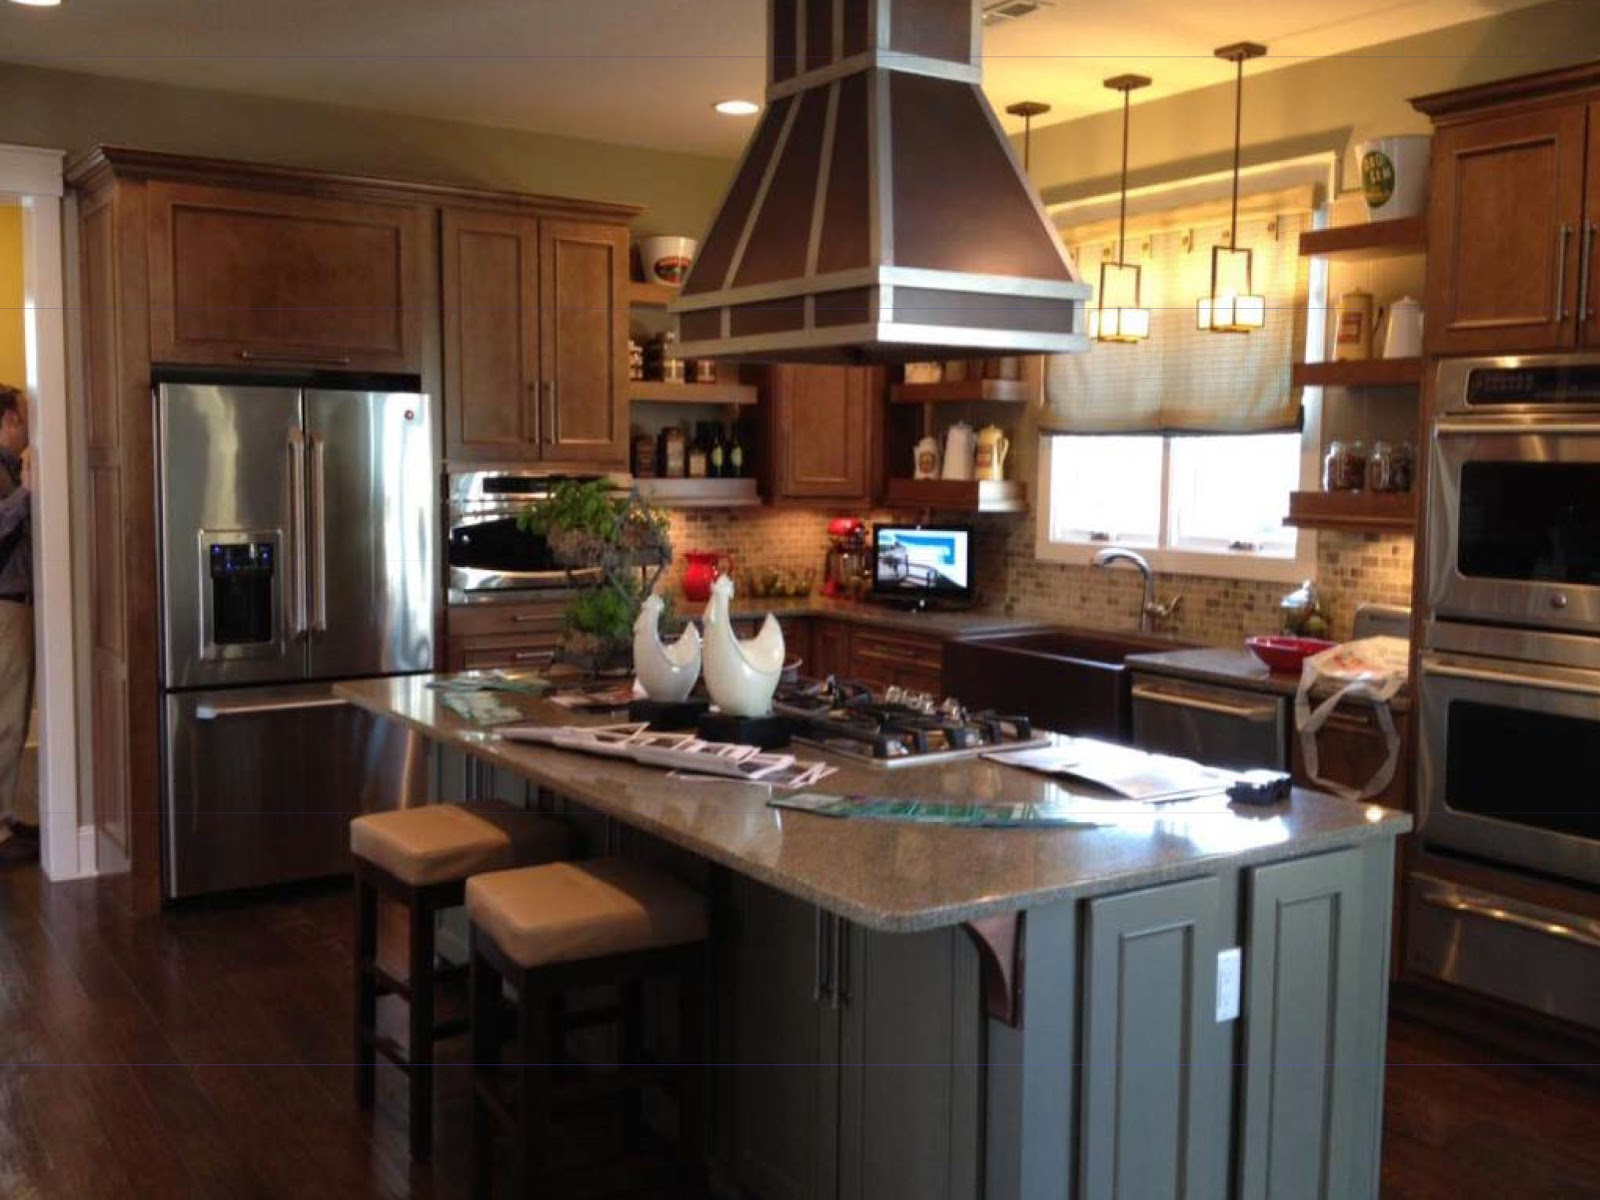 2012 Manufactured Housing Industry Awards Mobile Home Living